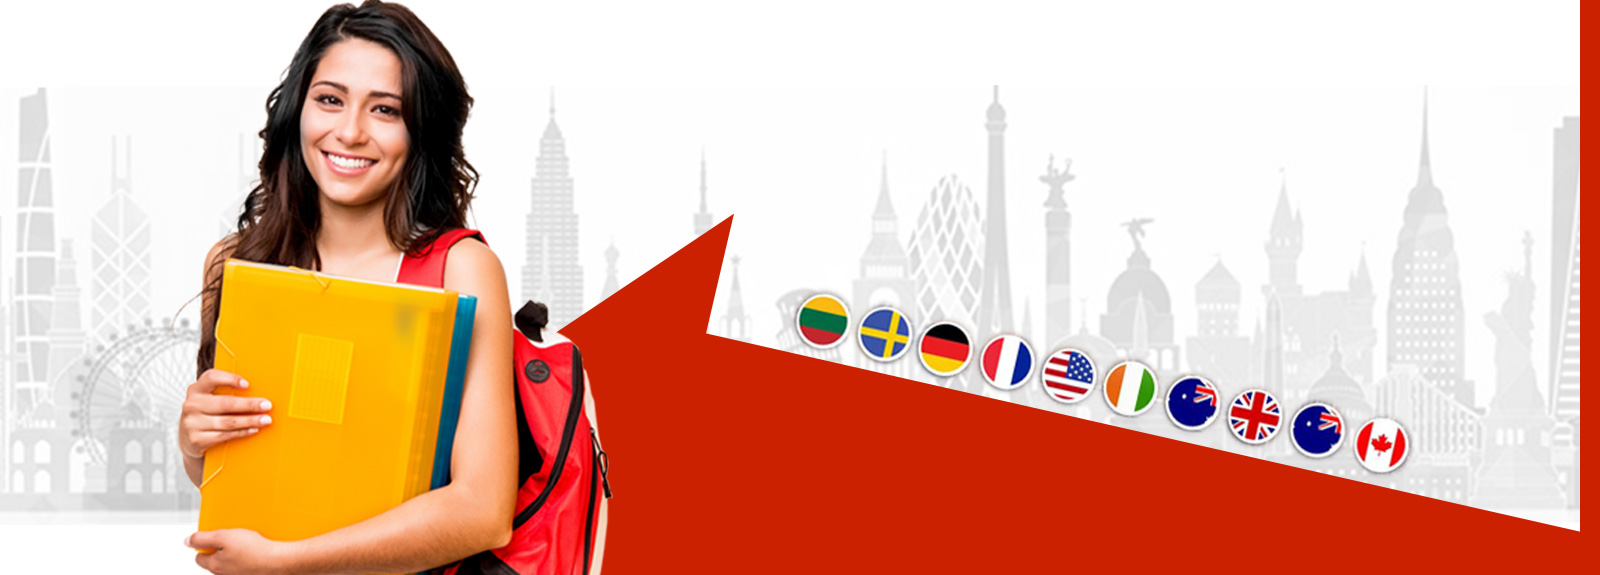 Study Abroad in Kochi, Immigration Consultants in Kottayam, IELTS / OET  Training in Thrissur, Kerala